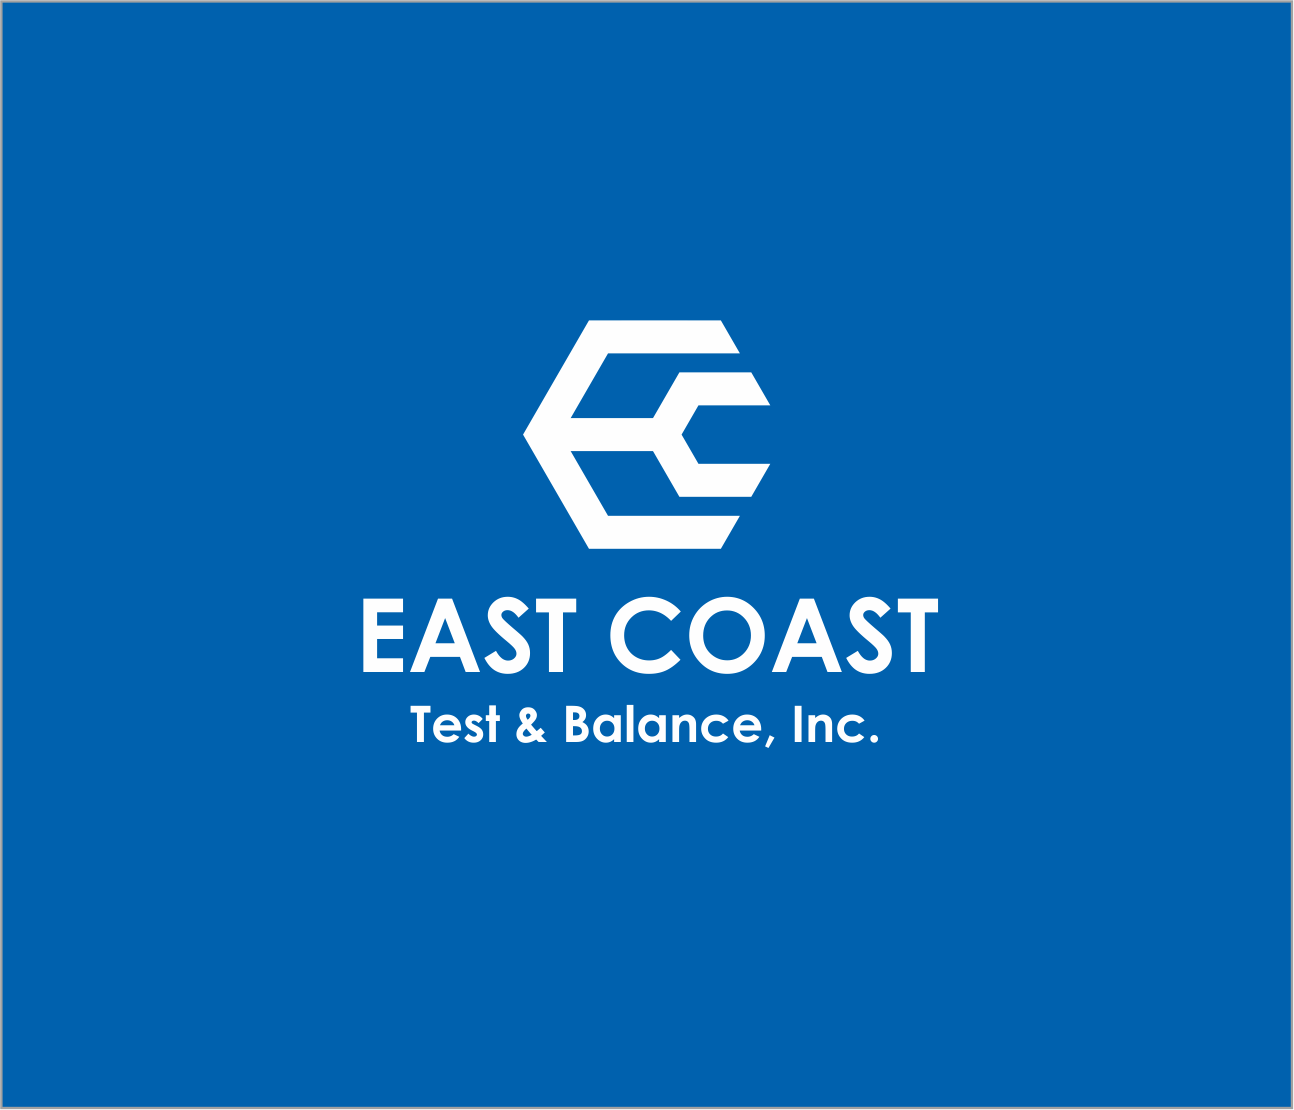 Logo Design by Armada Jamaluddin - Entry No. 52 in the Logo Design Contest Logo Design for East Coast Test & Balance, Inc. (ECTB).